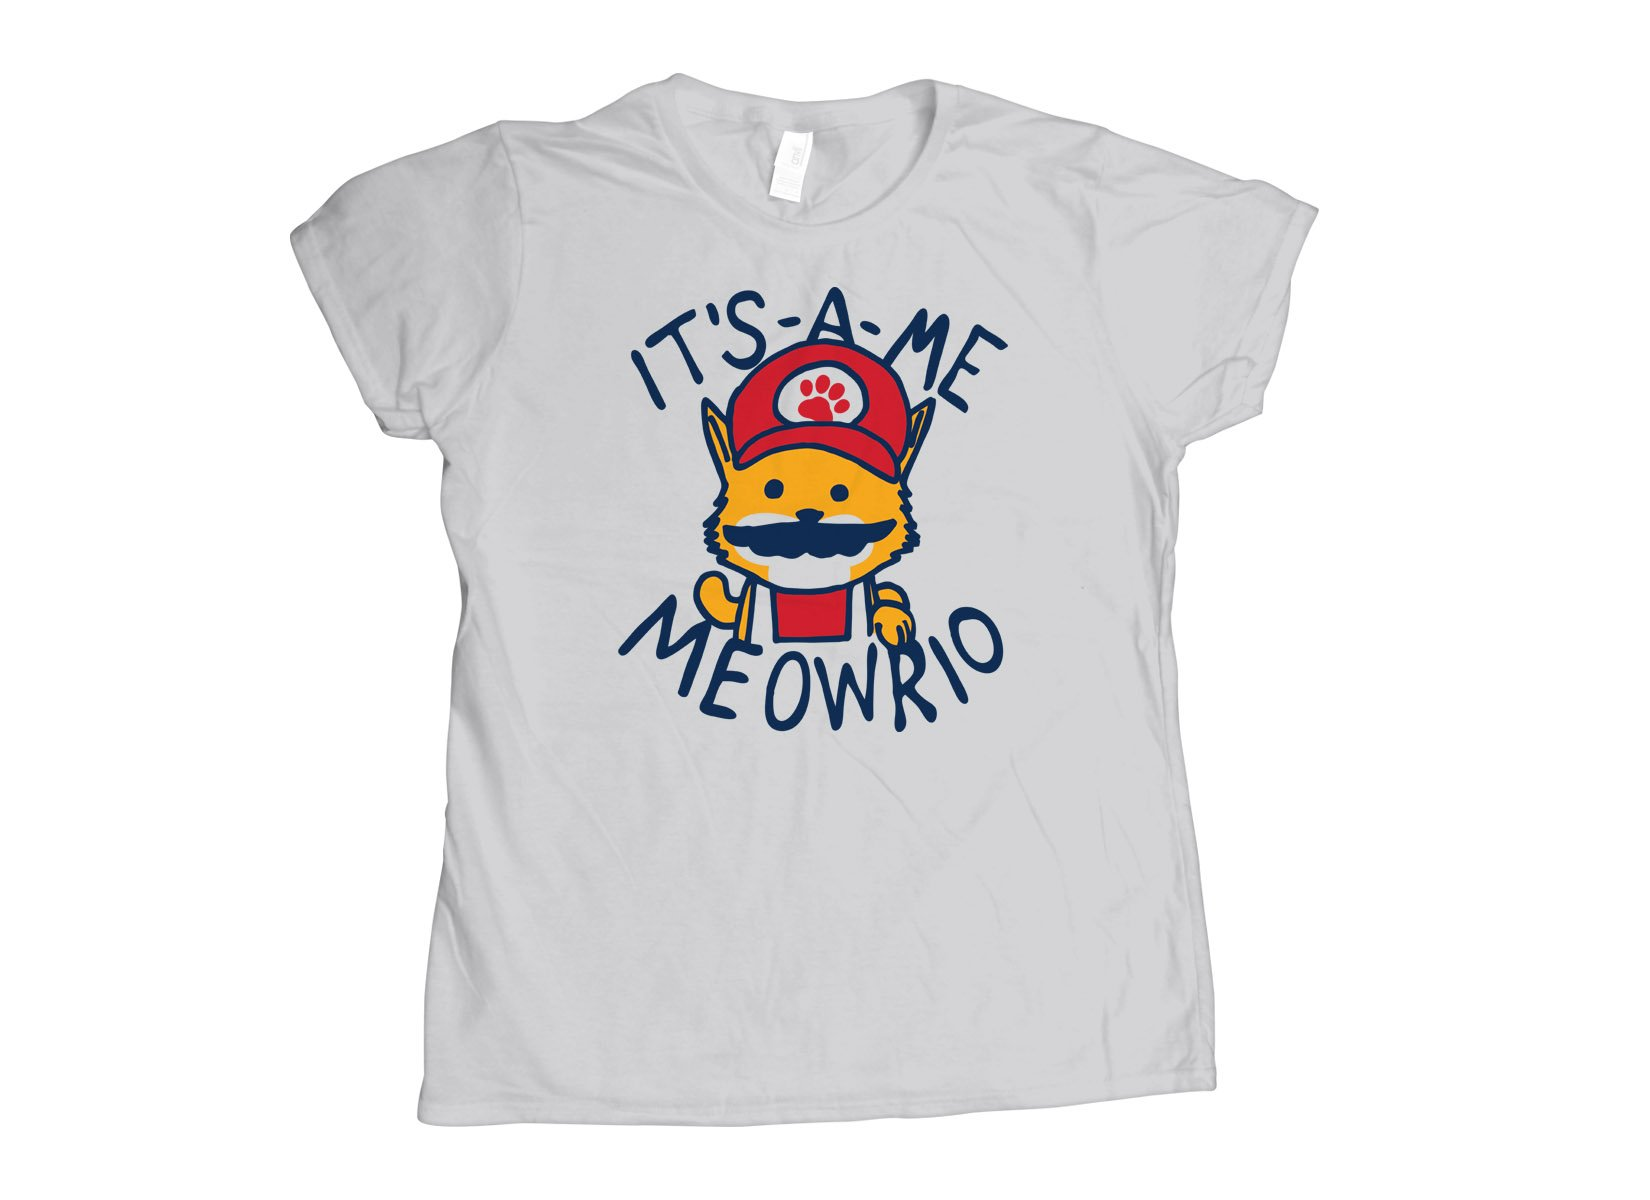 It's-a-me Meowrio on Womens T-Shirt